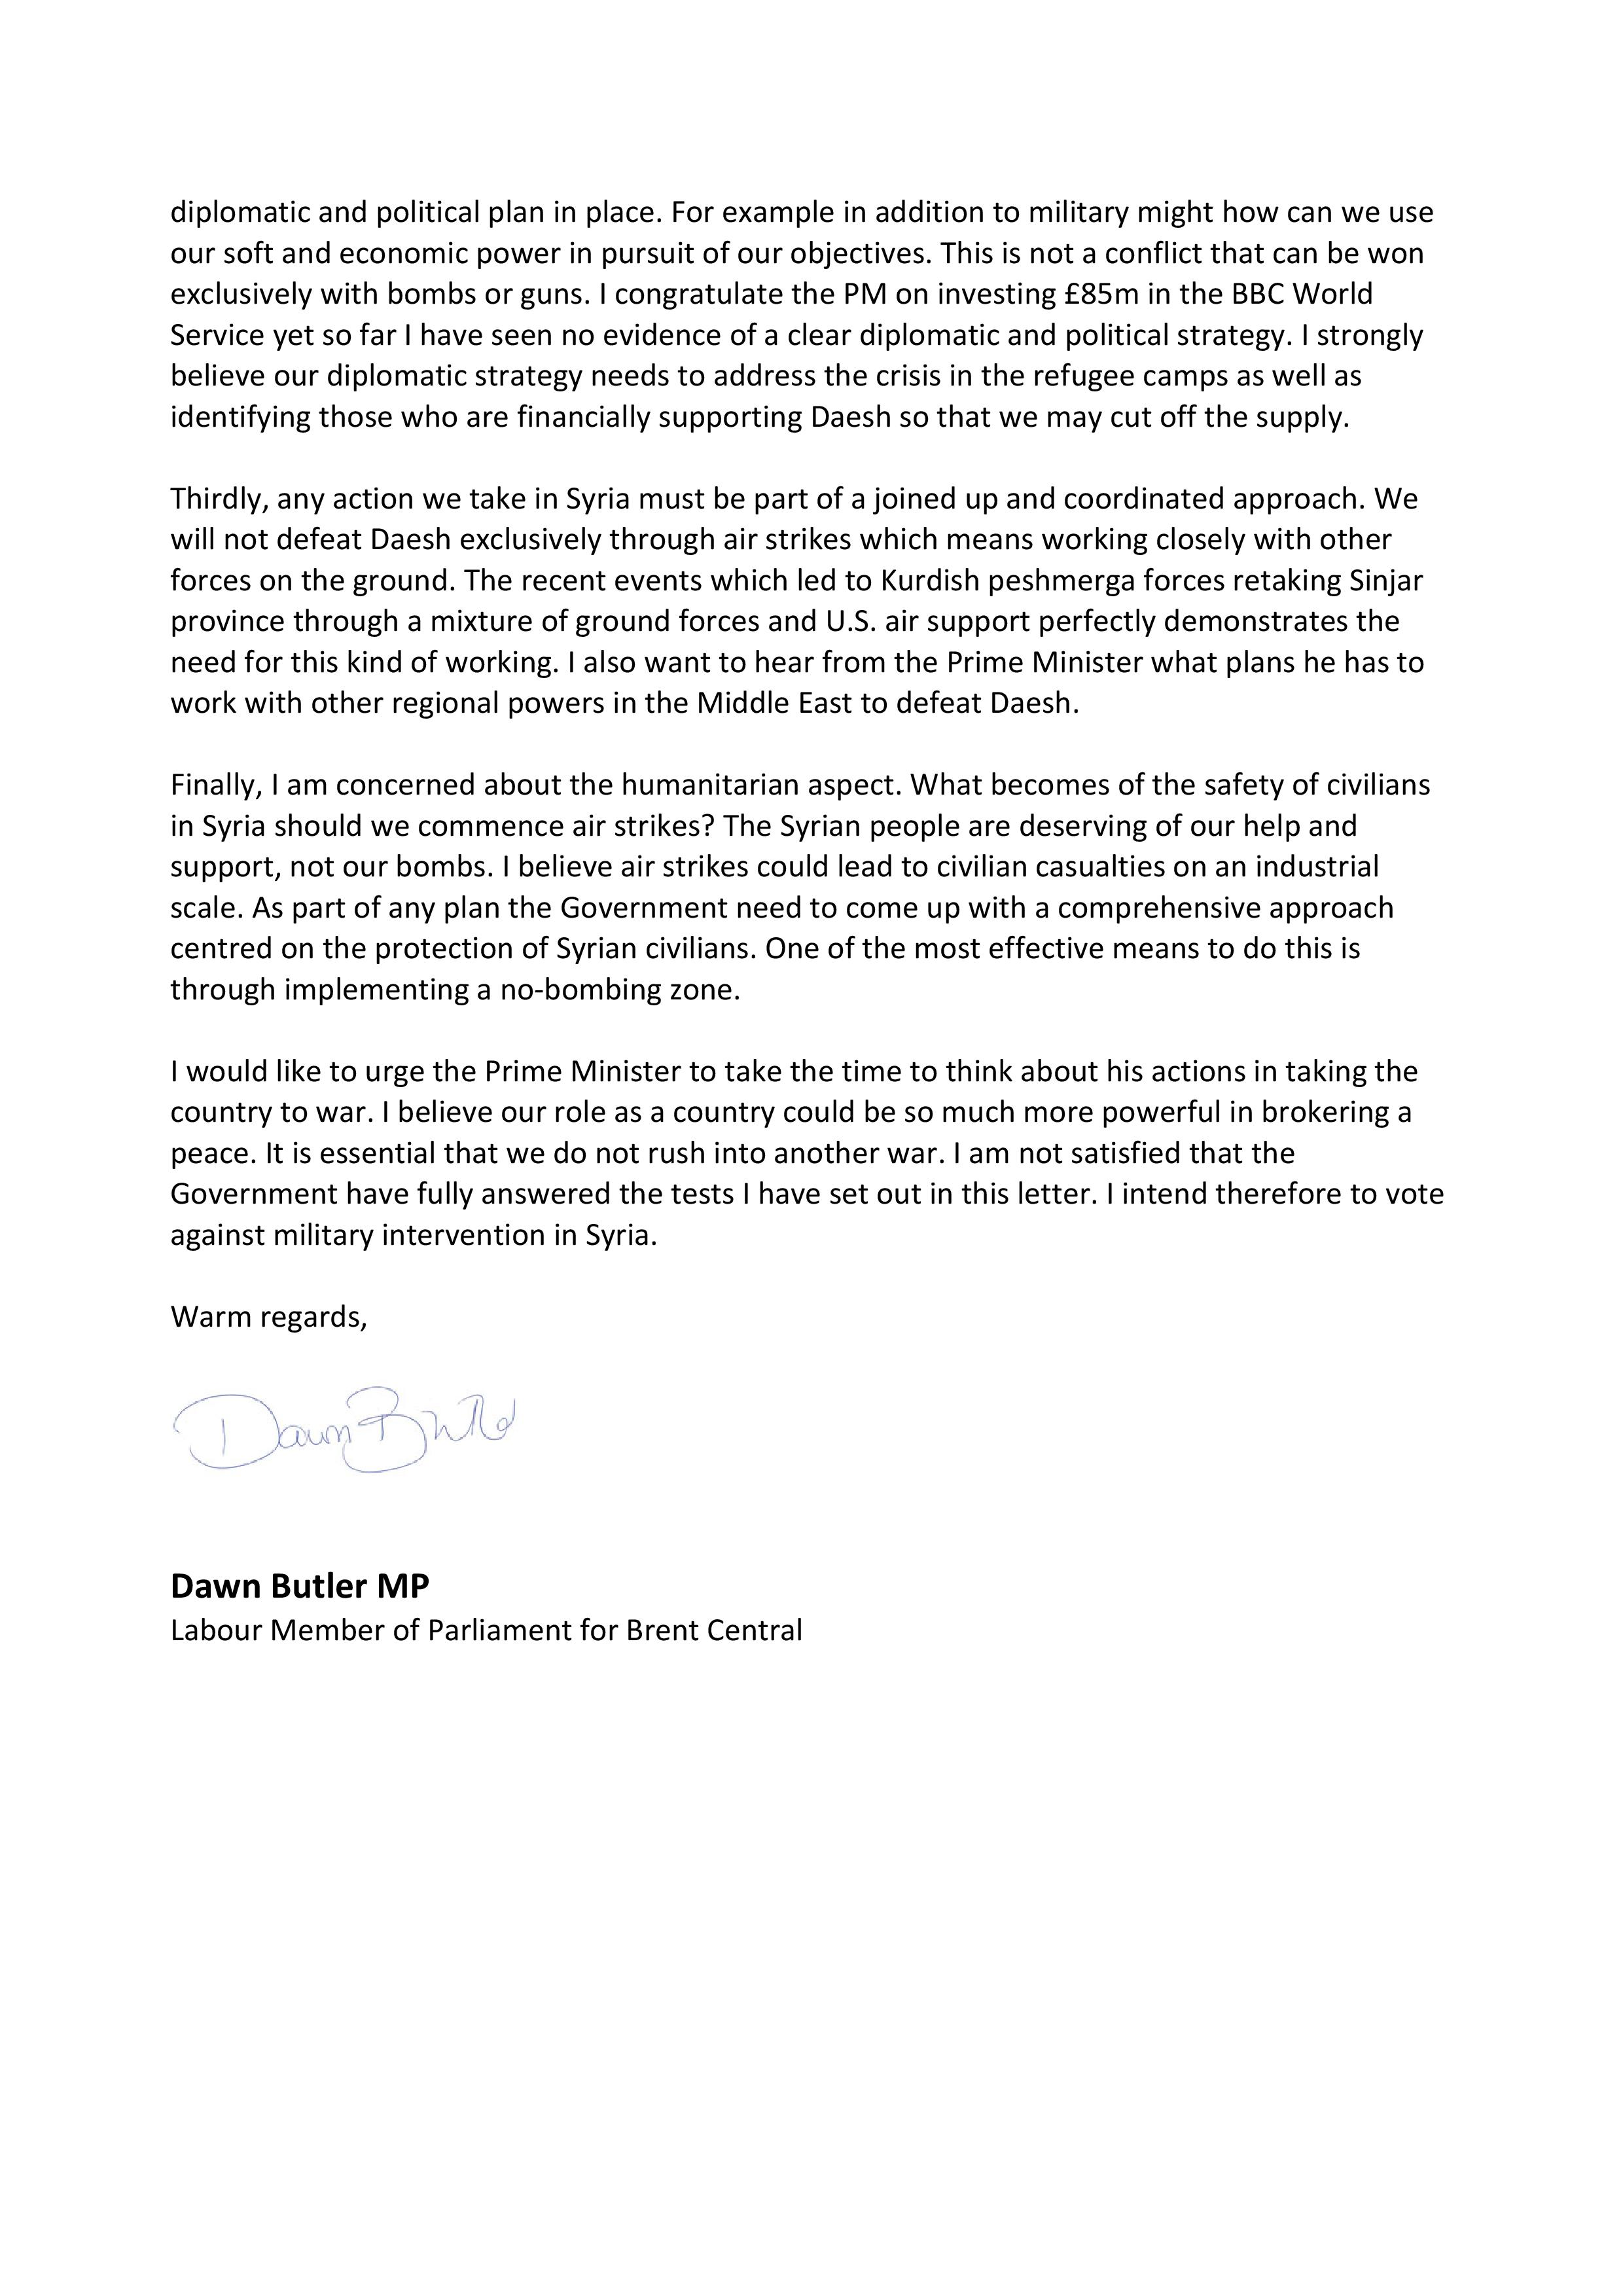 Updated_Syria_Letter-page-002.jpg